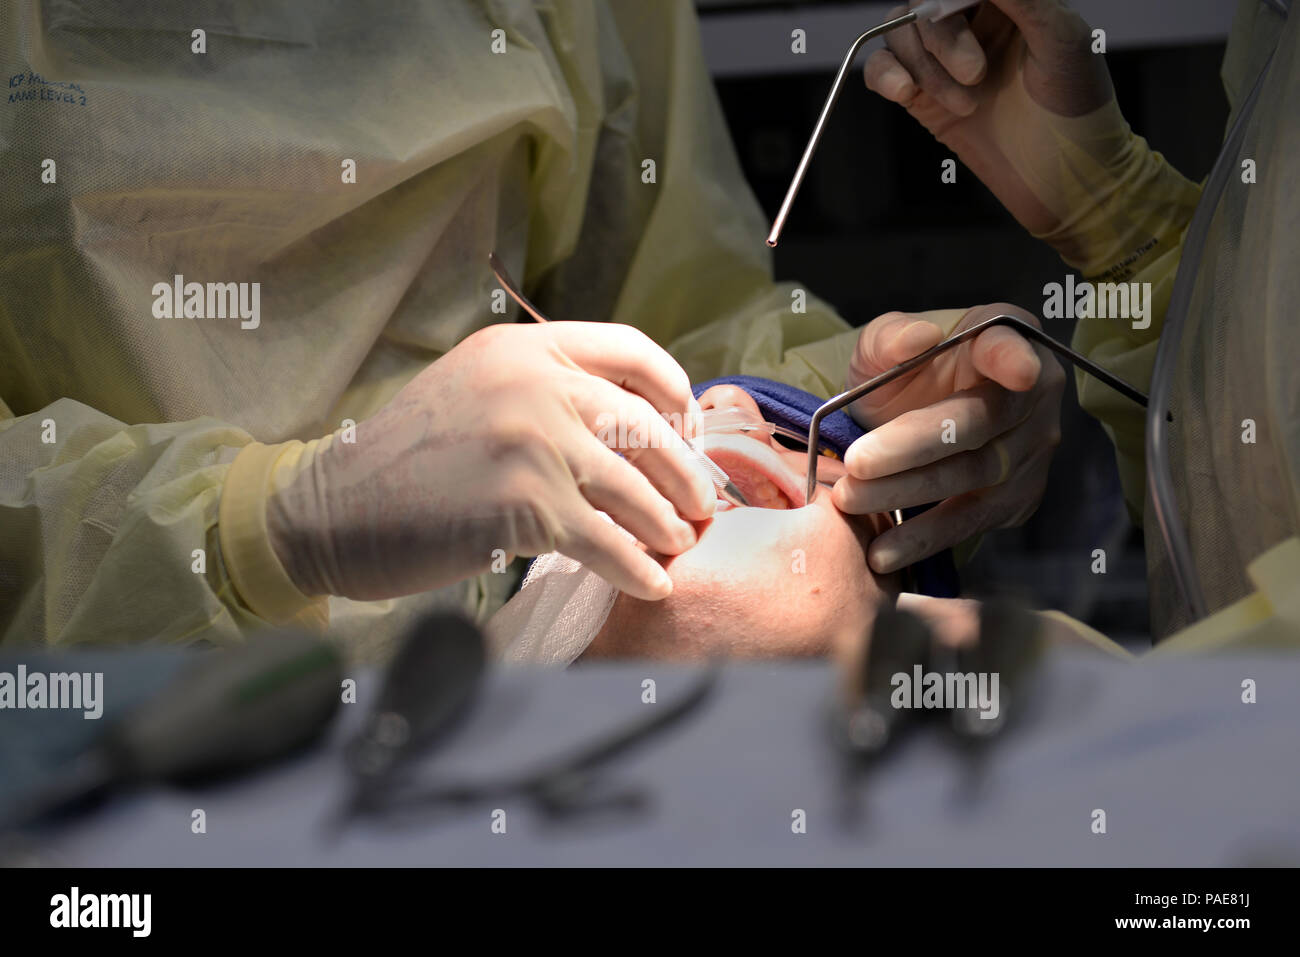 U.S. Air Force Airmen assigned to the 633rd Medical Group, perform oral surgery at Langley Air Force Base, Va., March 17, 2016. In addition to wisdom teeth removal, Langley's oral surgeons can perform corrective jaw surgery, obstructive sleep apnea surgery, bone grafting, repair of complex lacerations of the head and neck and soft-tissue biopsies of the face. (U.S. Air Force photo by Airman 1st Class Kaylee Dubois) - Stock Image